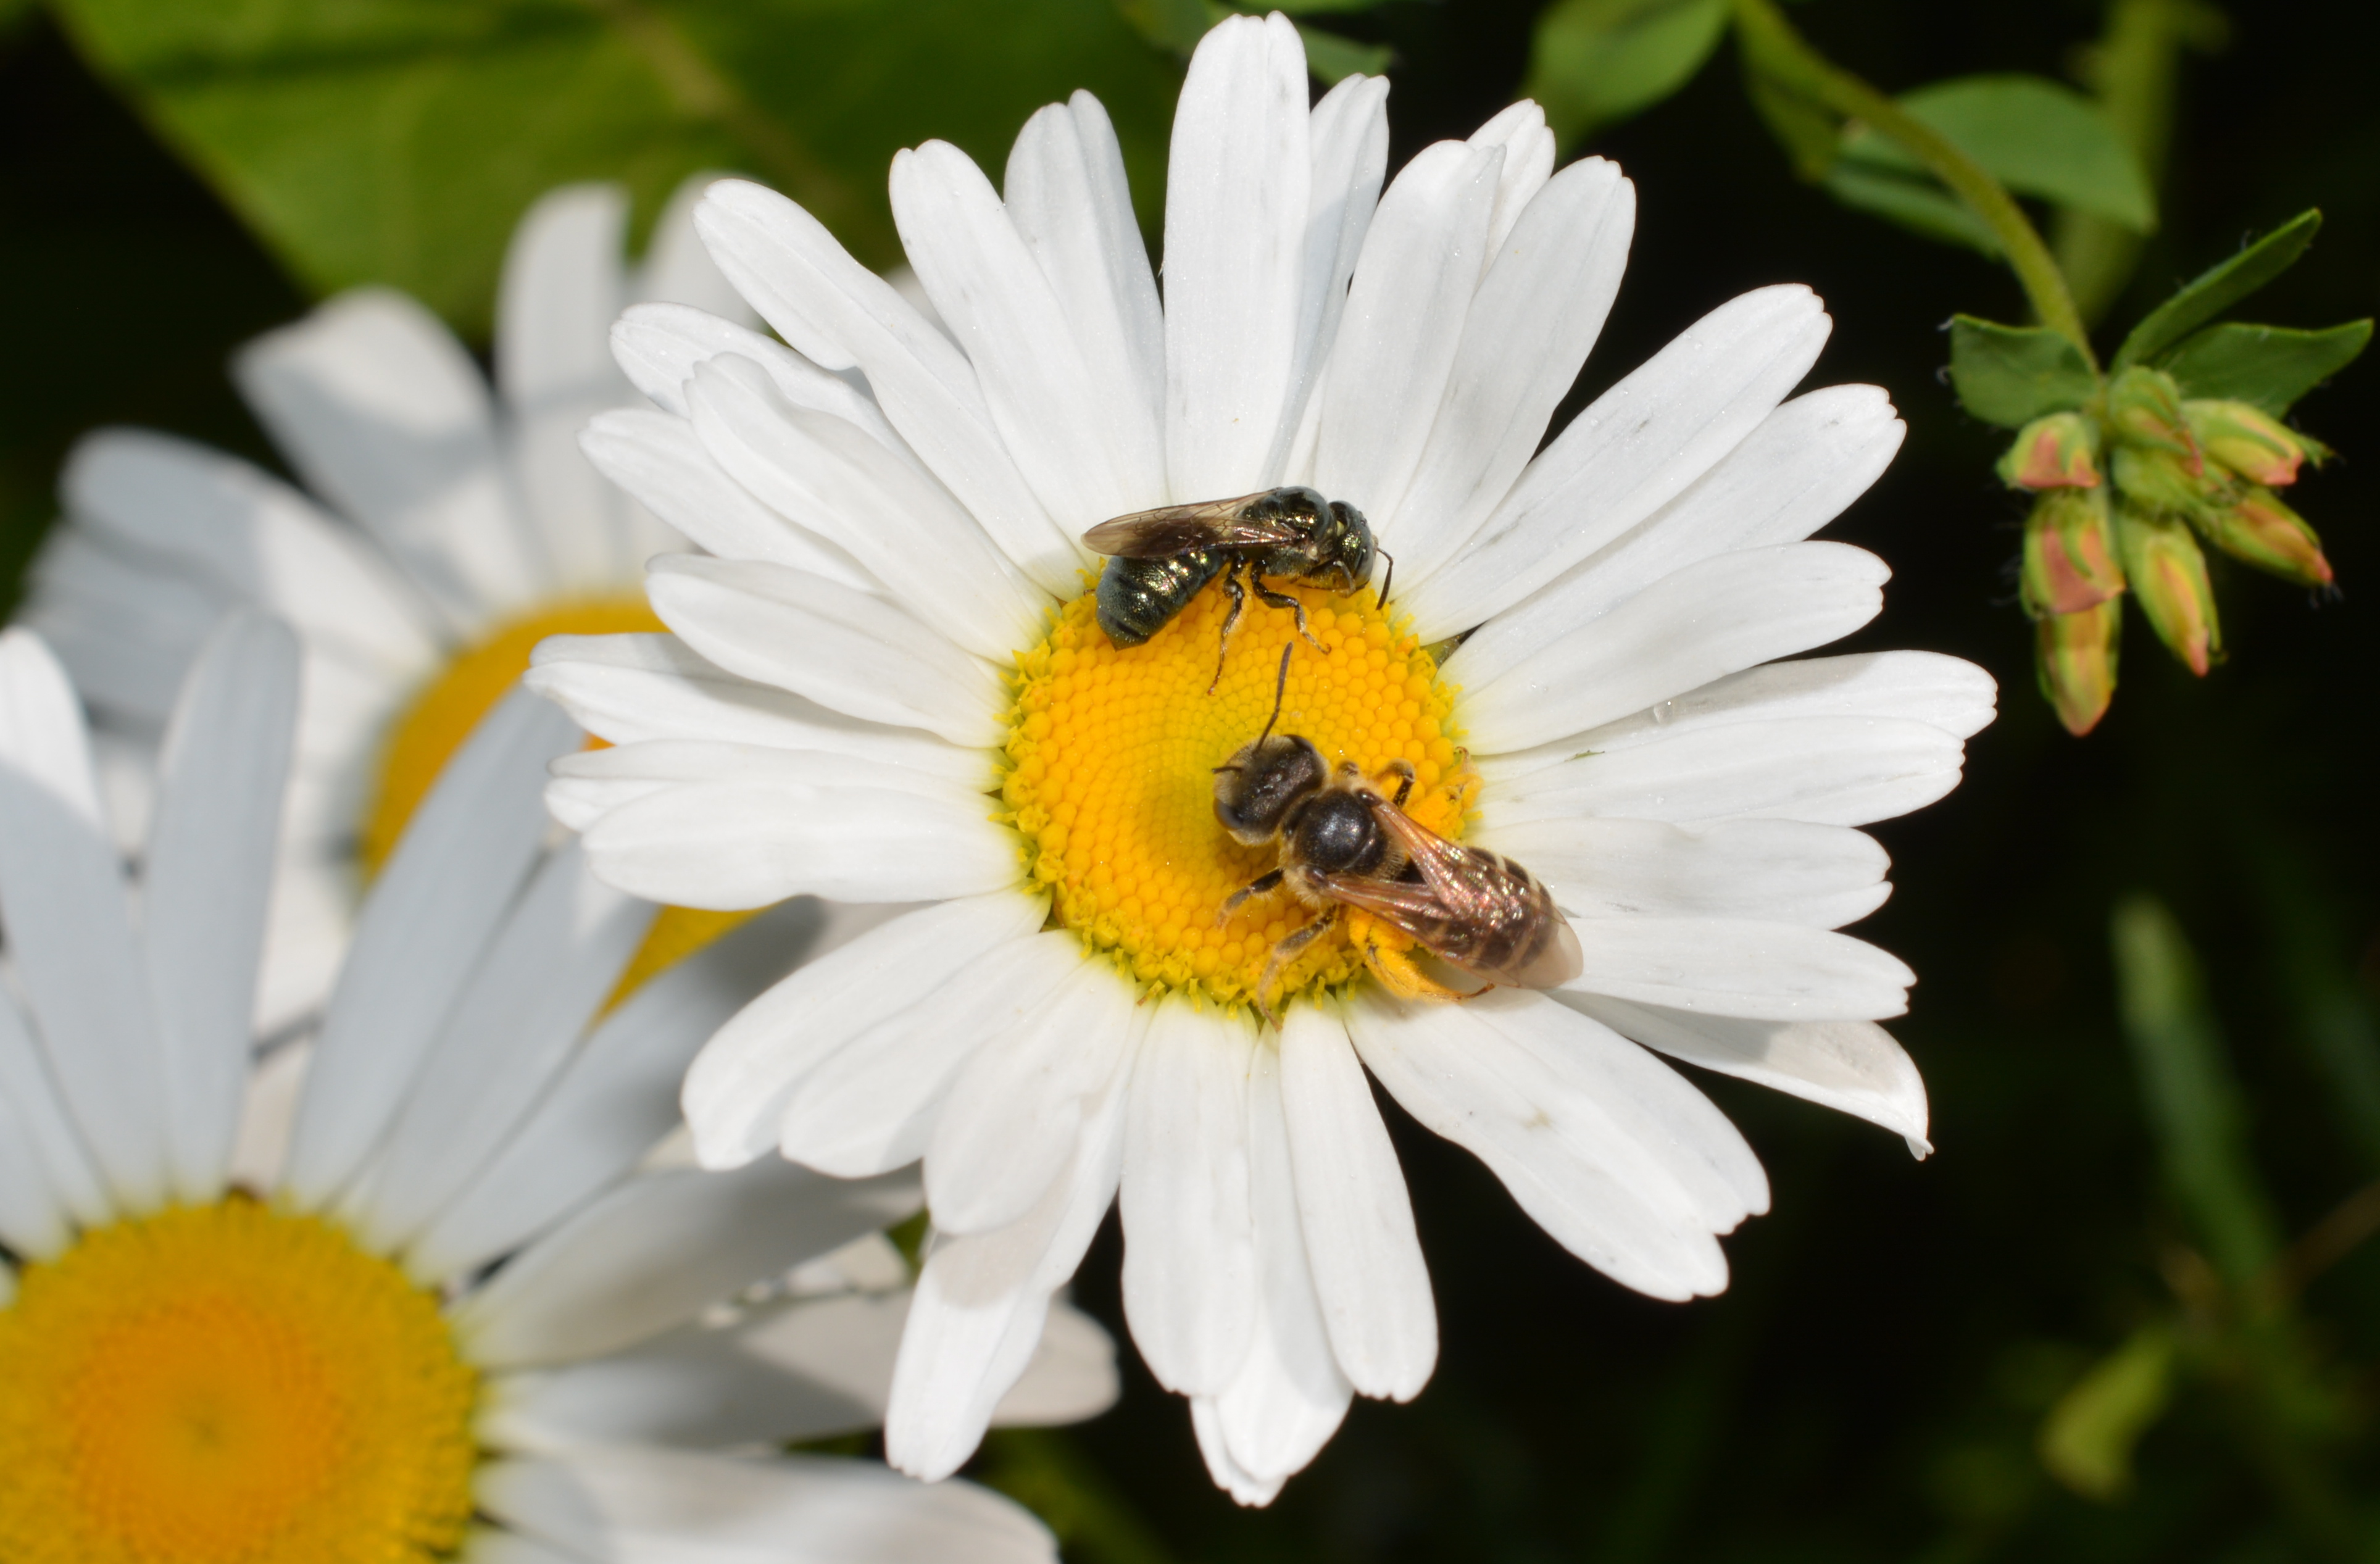 Dancing a duet on a daisy native beeology the sweat bee decides that two is a crowd and takes flight to explore a new daisy the small carpenter bee is left to enjoy a pollen and nectar snack on a izmirmasajfo